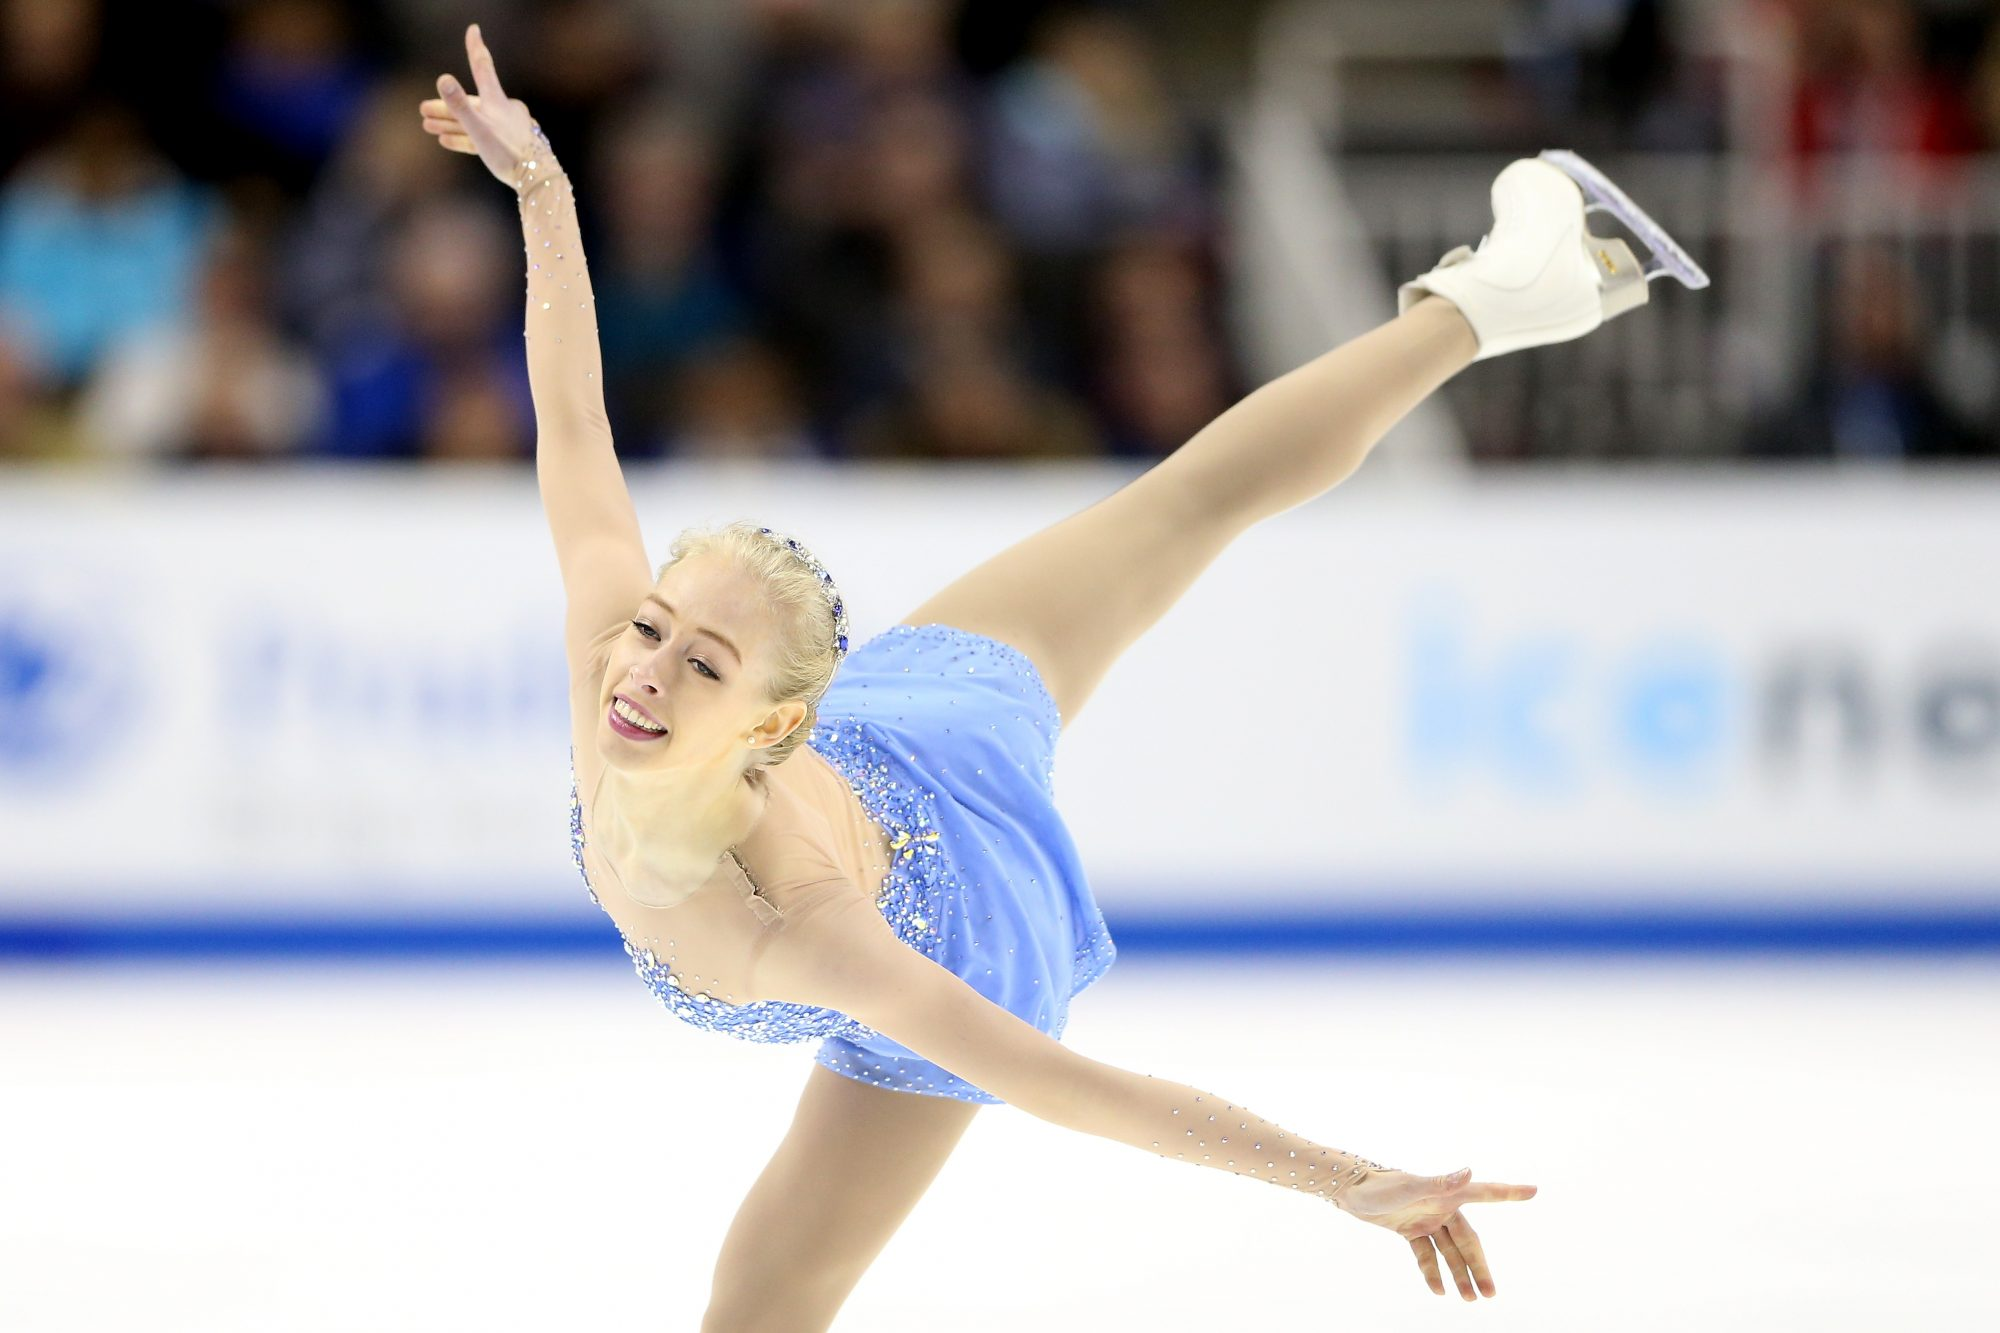 This Is the Insane Amount of Money It Takes to Become an Olympic Figure Skater